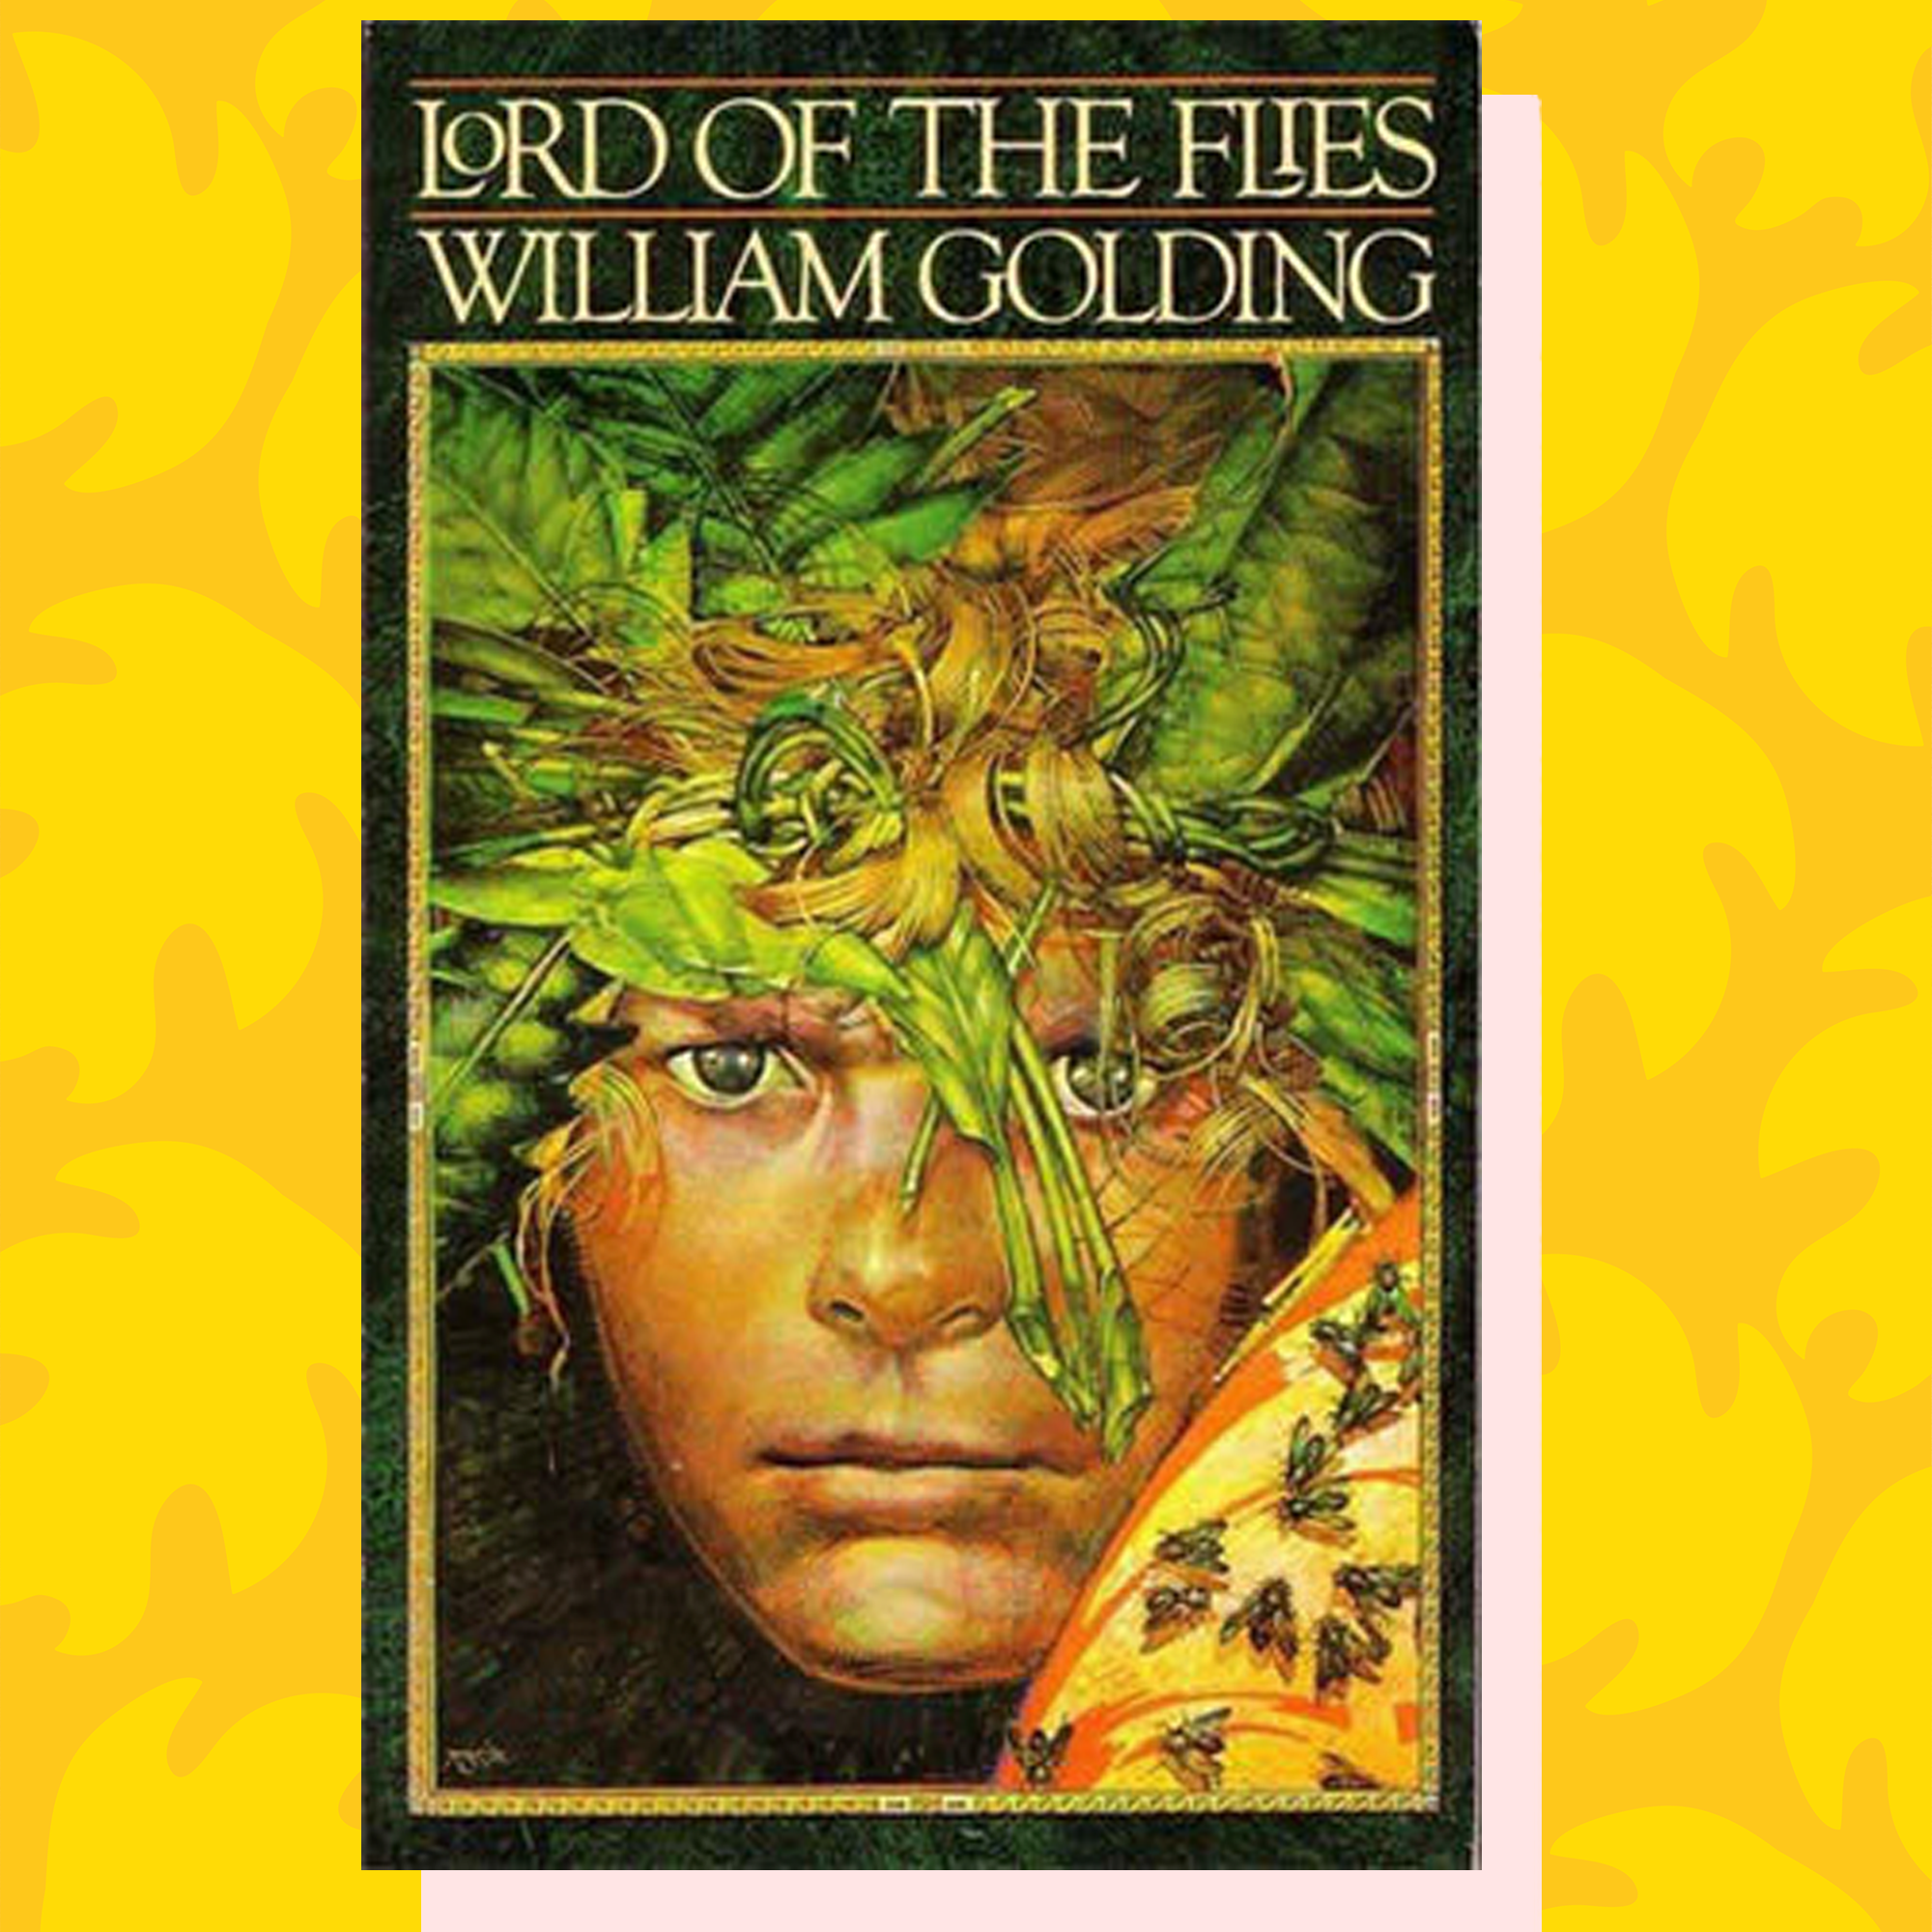 lord of the flies term paper Lord of the flies -- william golding's main, living protagonists, before, one year later, and into the farther future summary of psychiatric research and follow-up on 'the boys' who were stranded on the island of j.